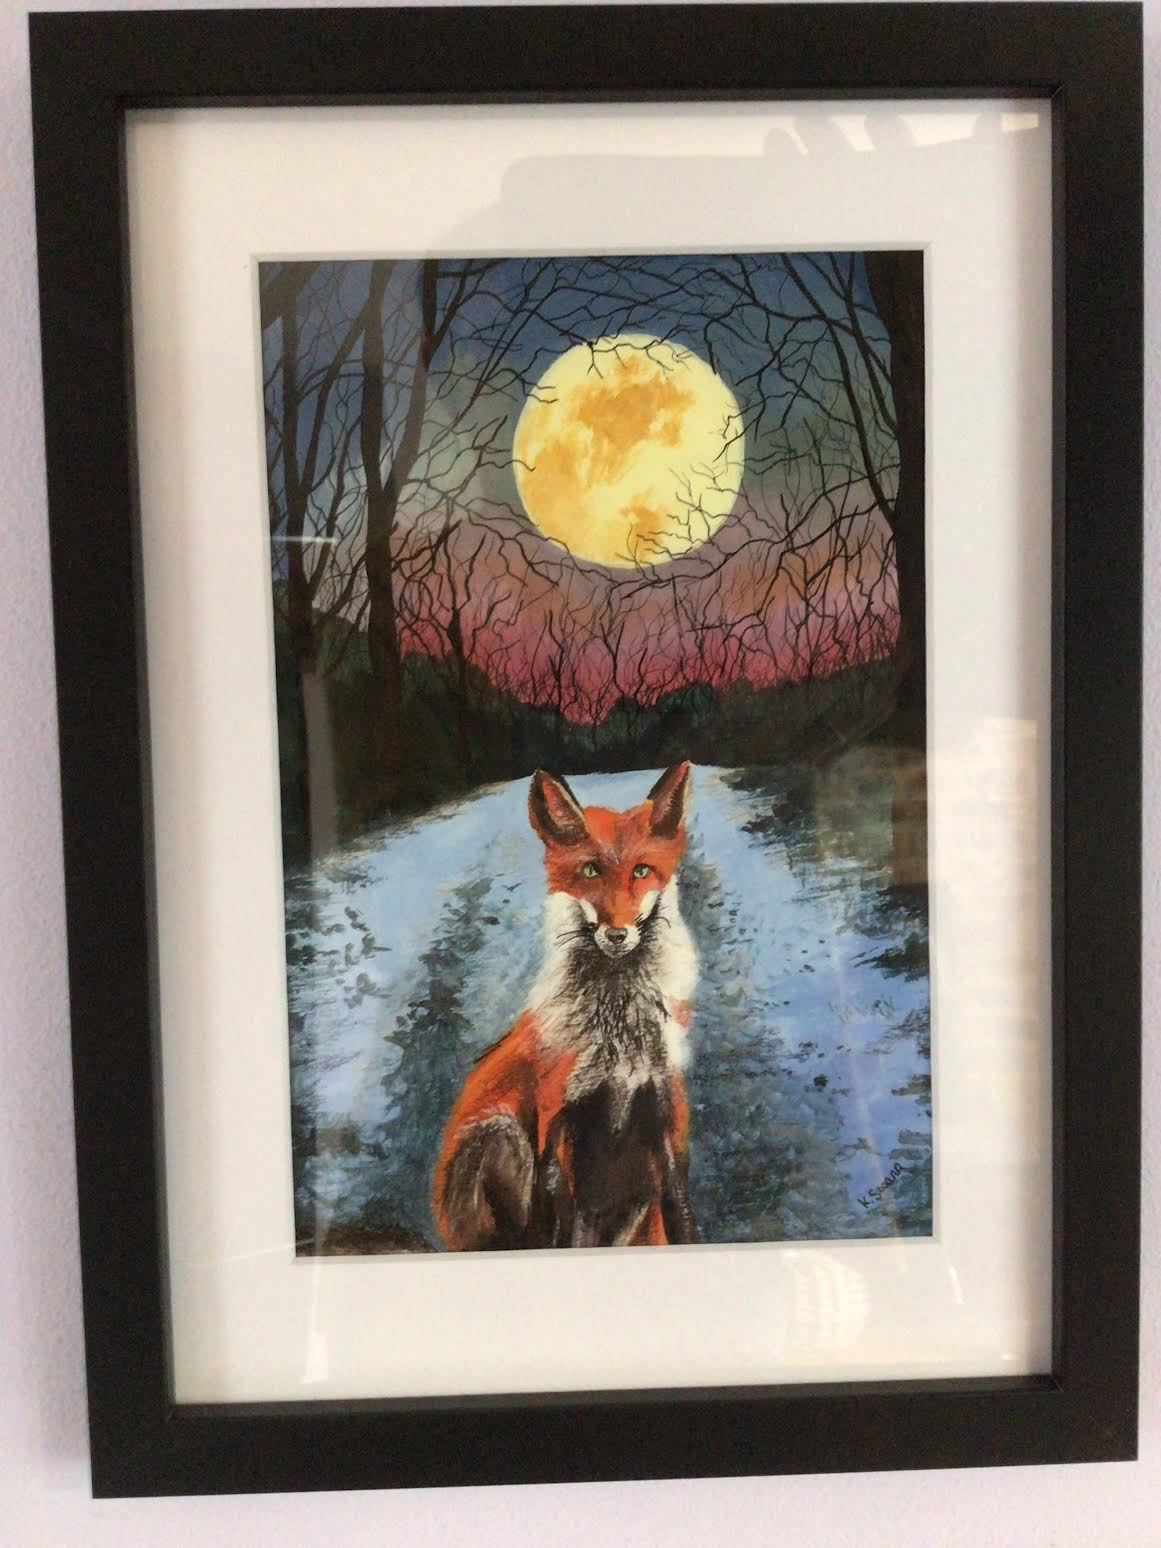 The Fox and the Moon